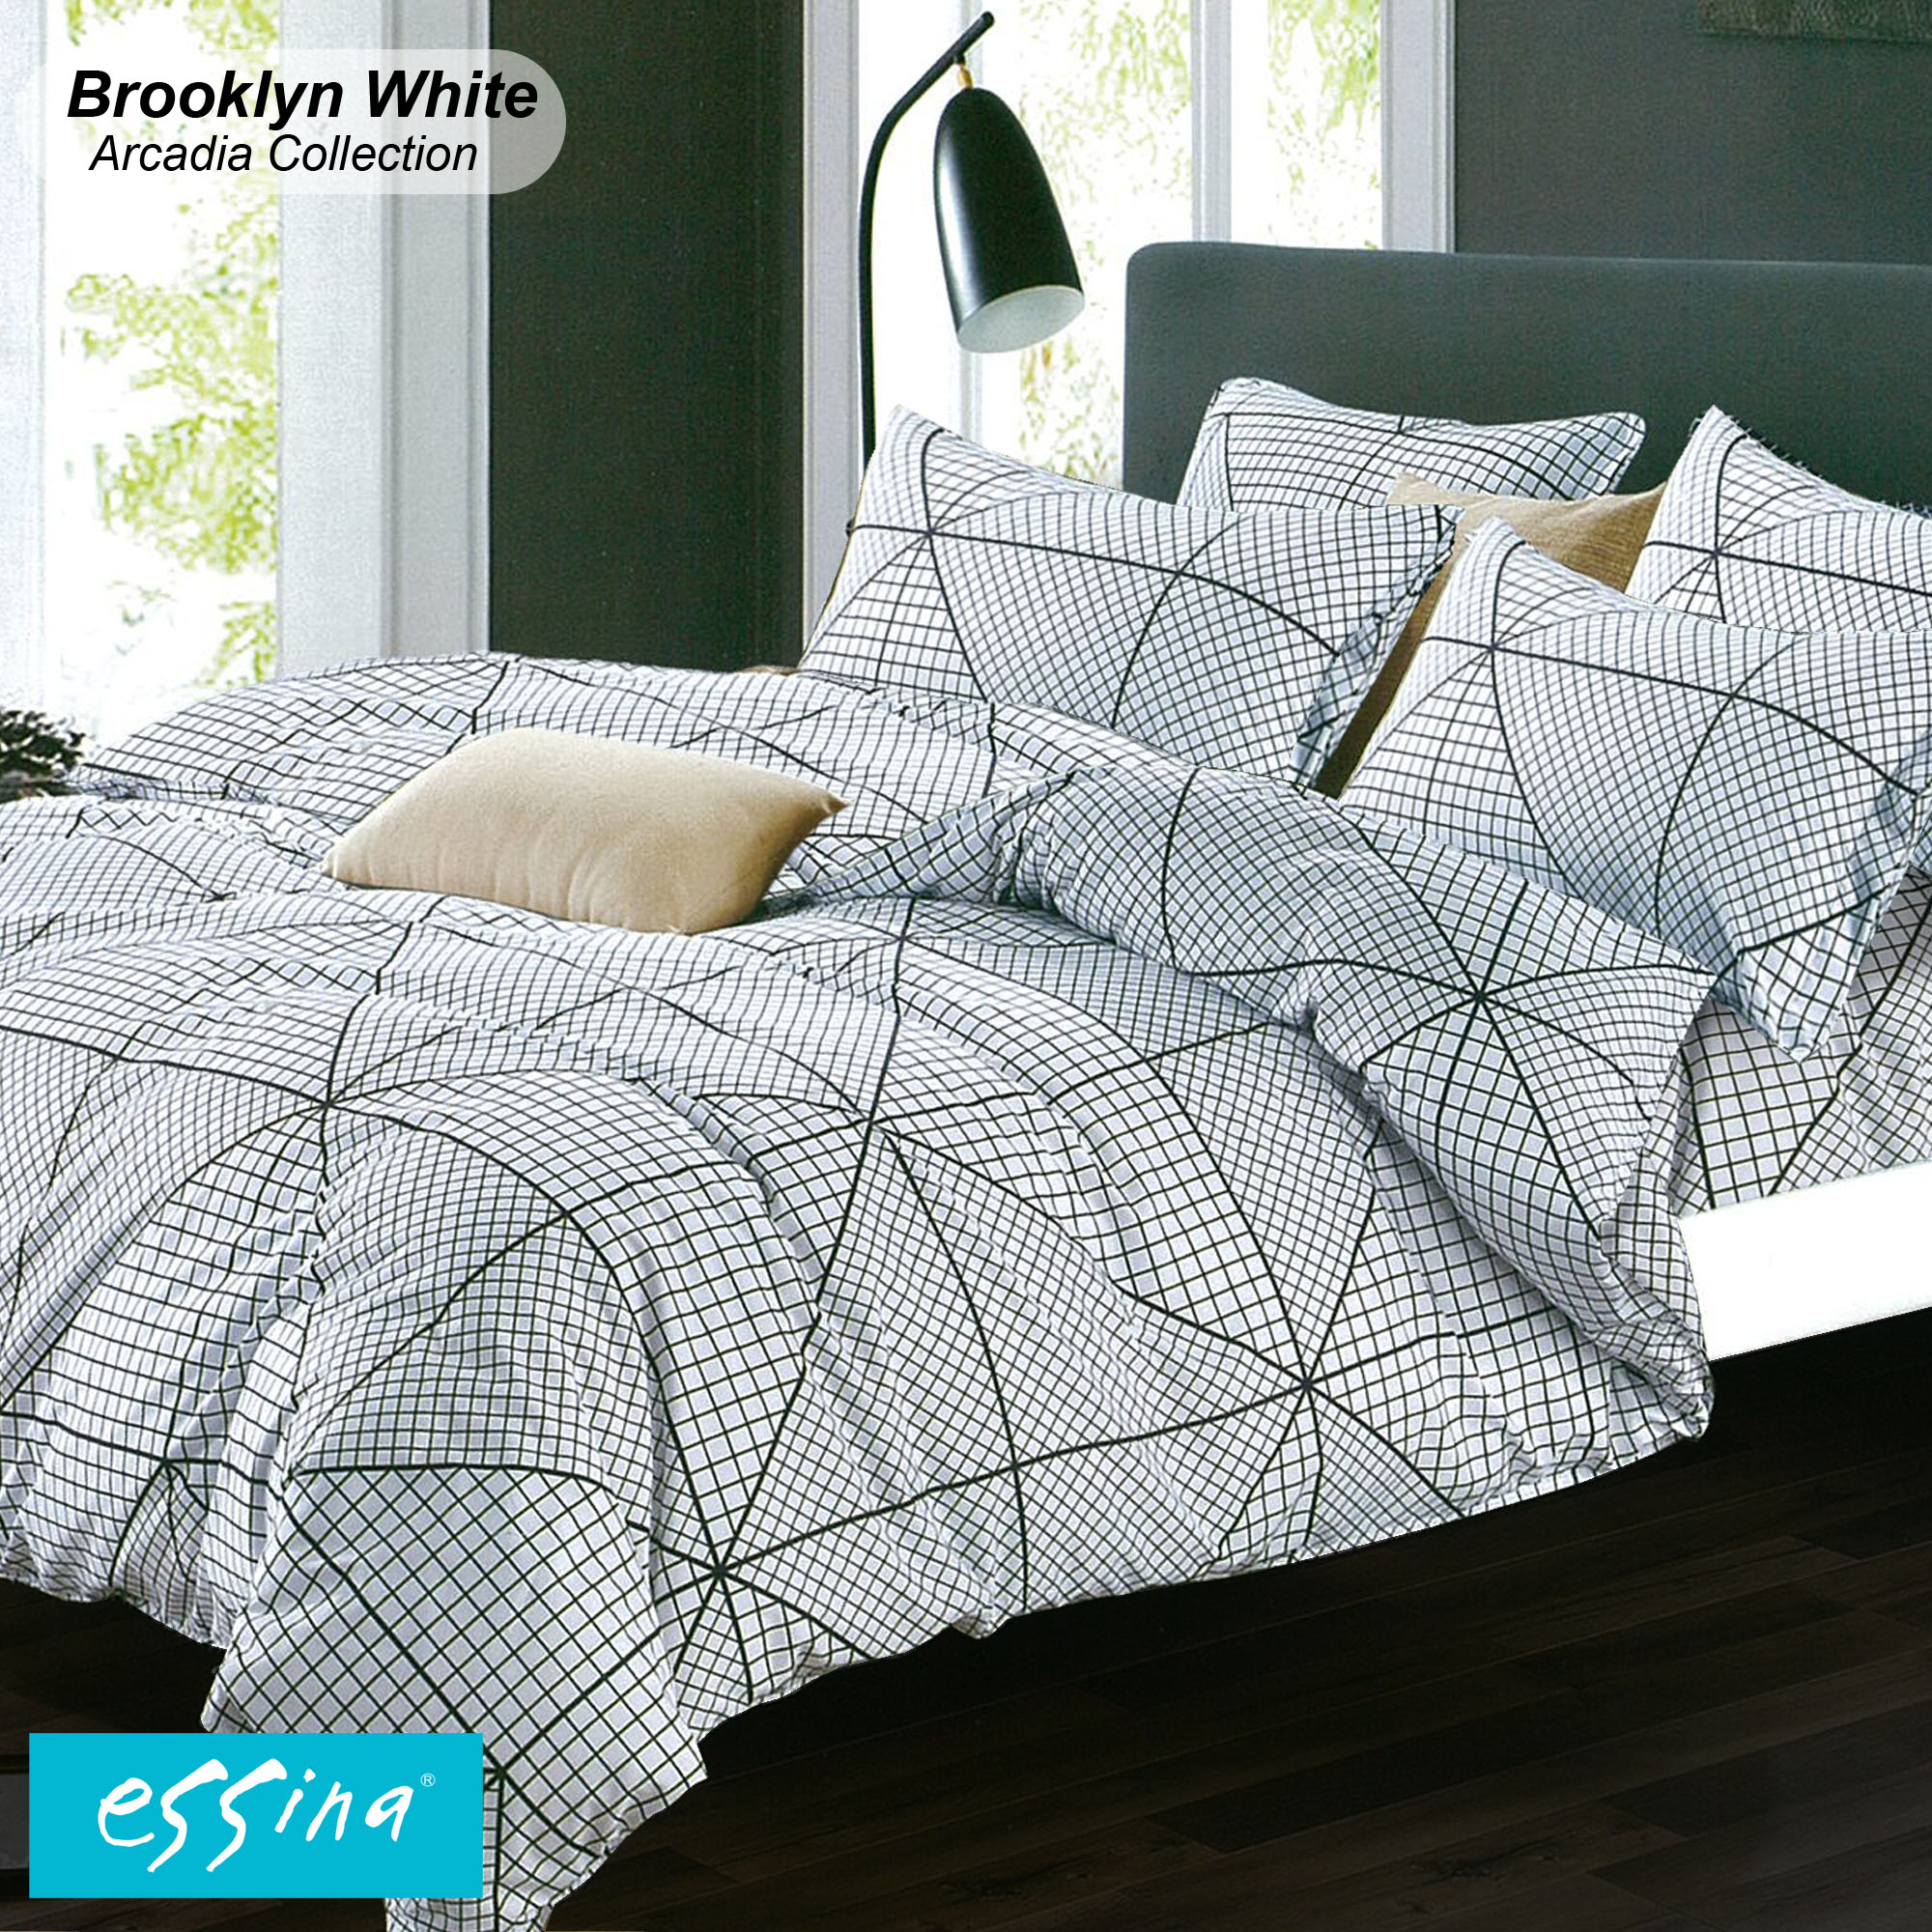 Essina Brooklyn White Fitted BedSheet with Pillow Case only Cadar Queen / King / Super Single / Single